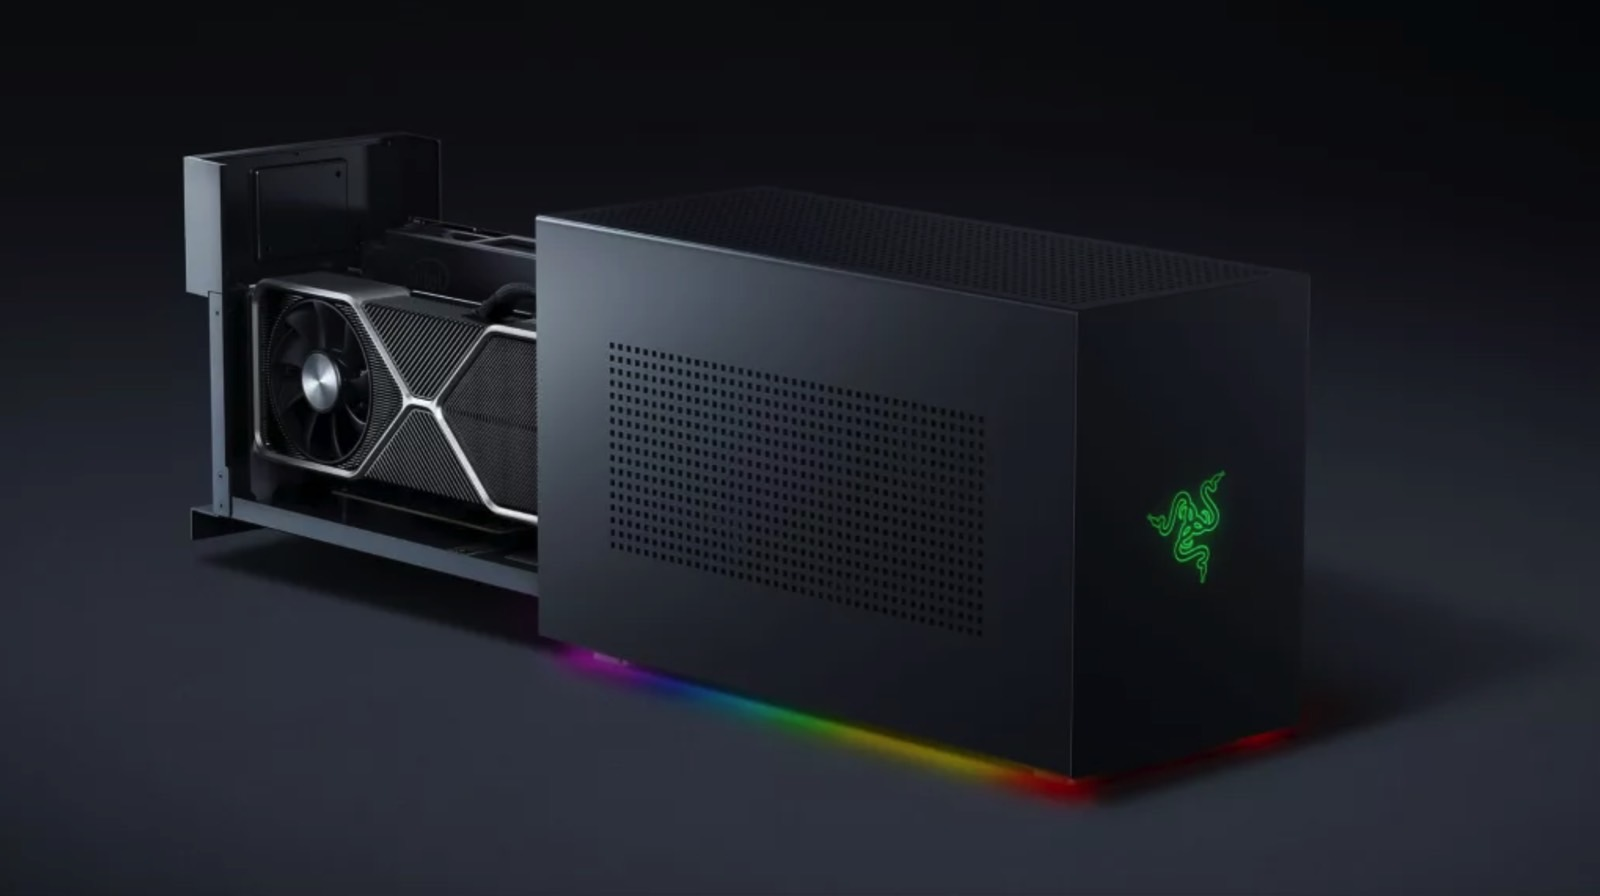 Forget the PS5 and Xbox, Razer just launched a modular gaming PC